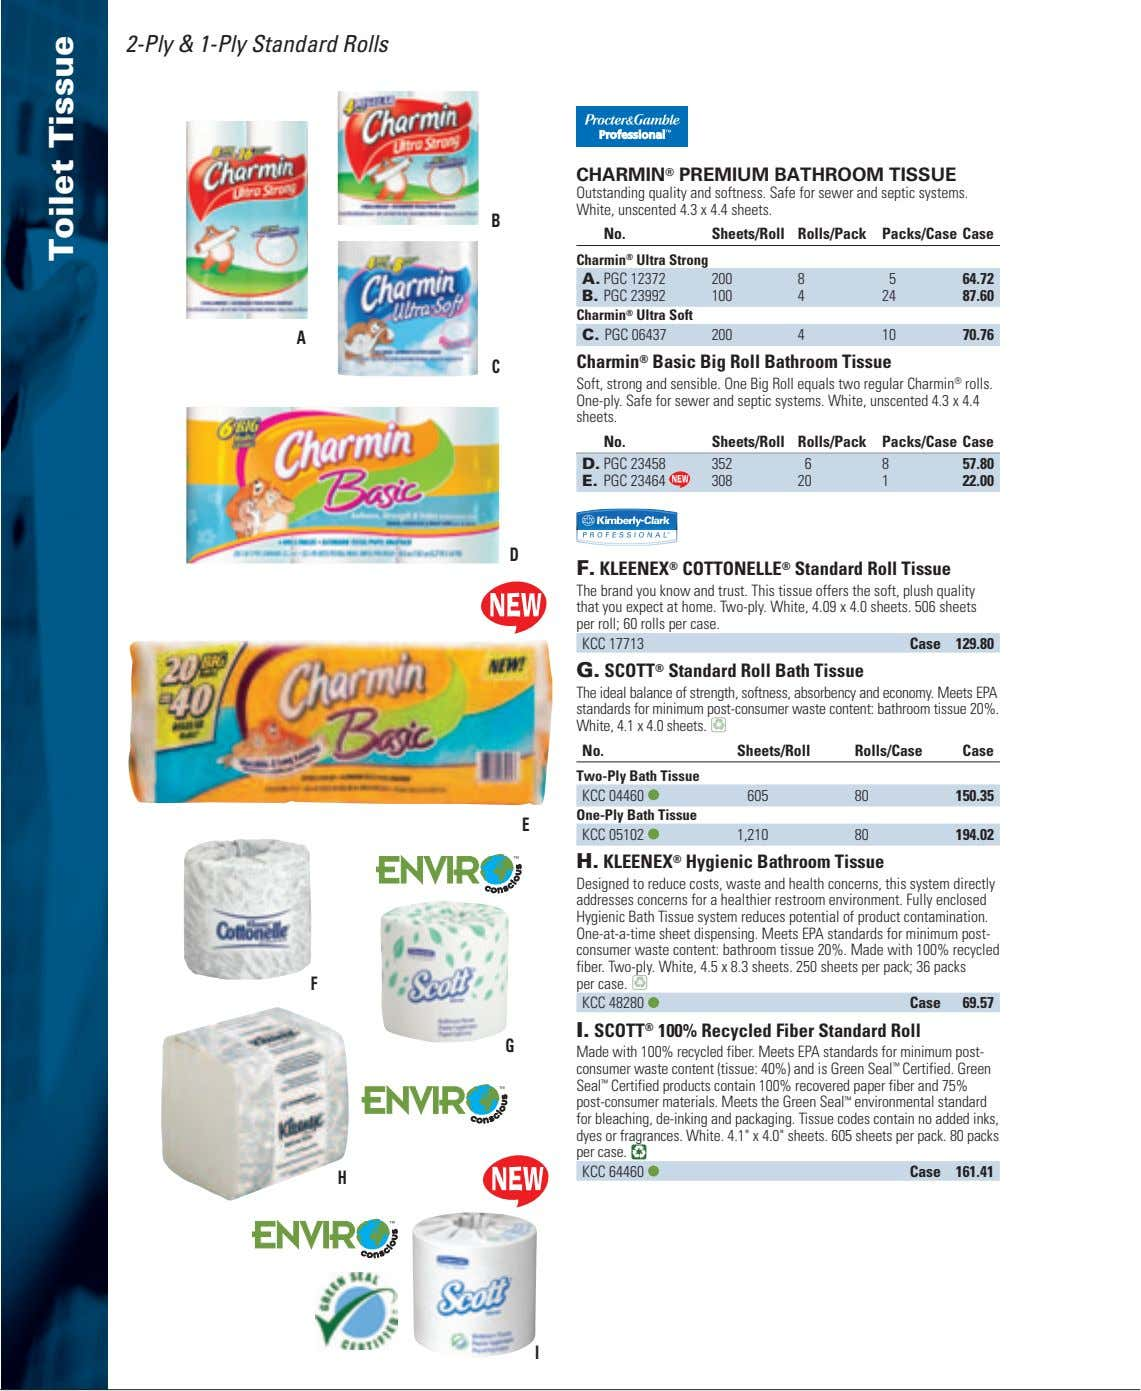 2-Ply & 1-Ply Standard Rolls CHARMIN ® PREMIUM BATHROOM TISSUE Outstanding quality and softness. Safe